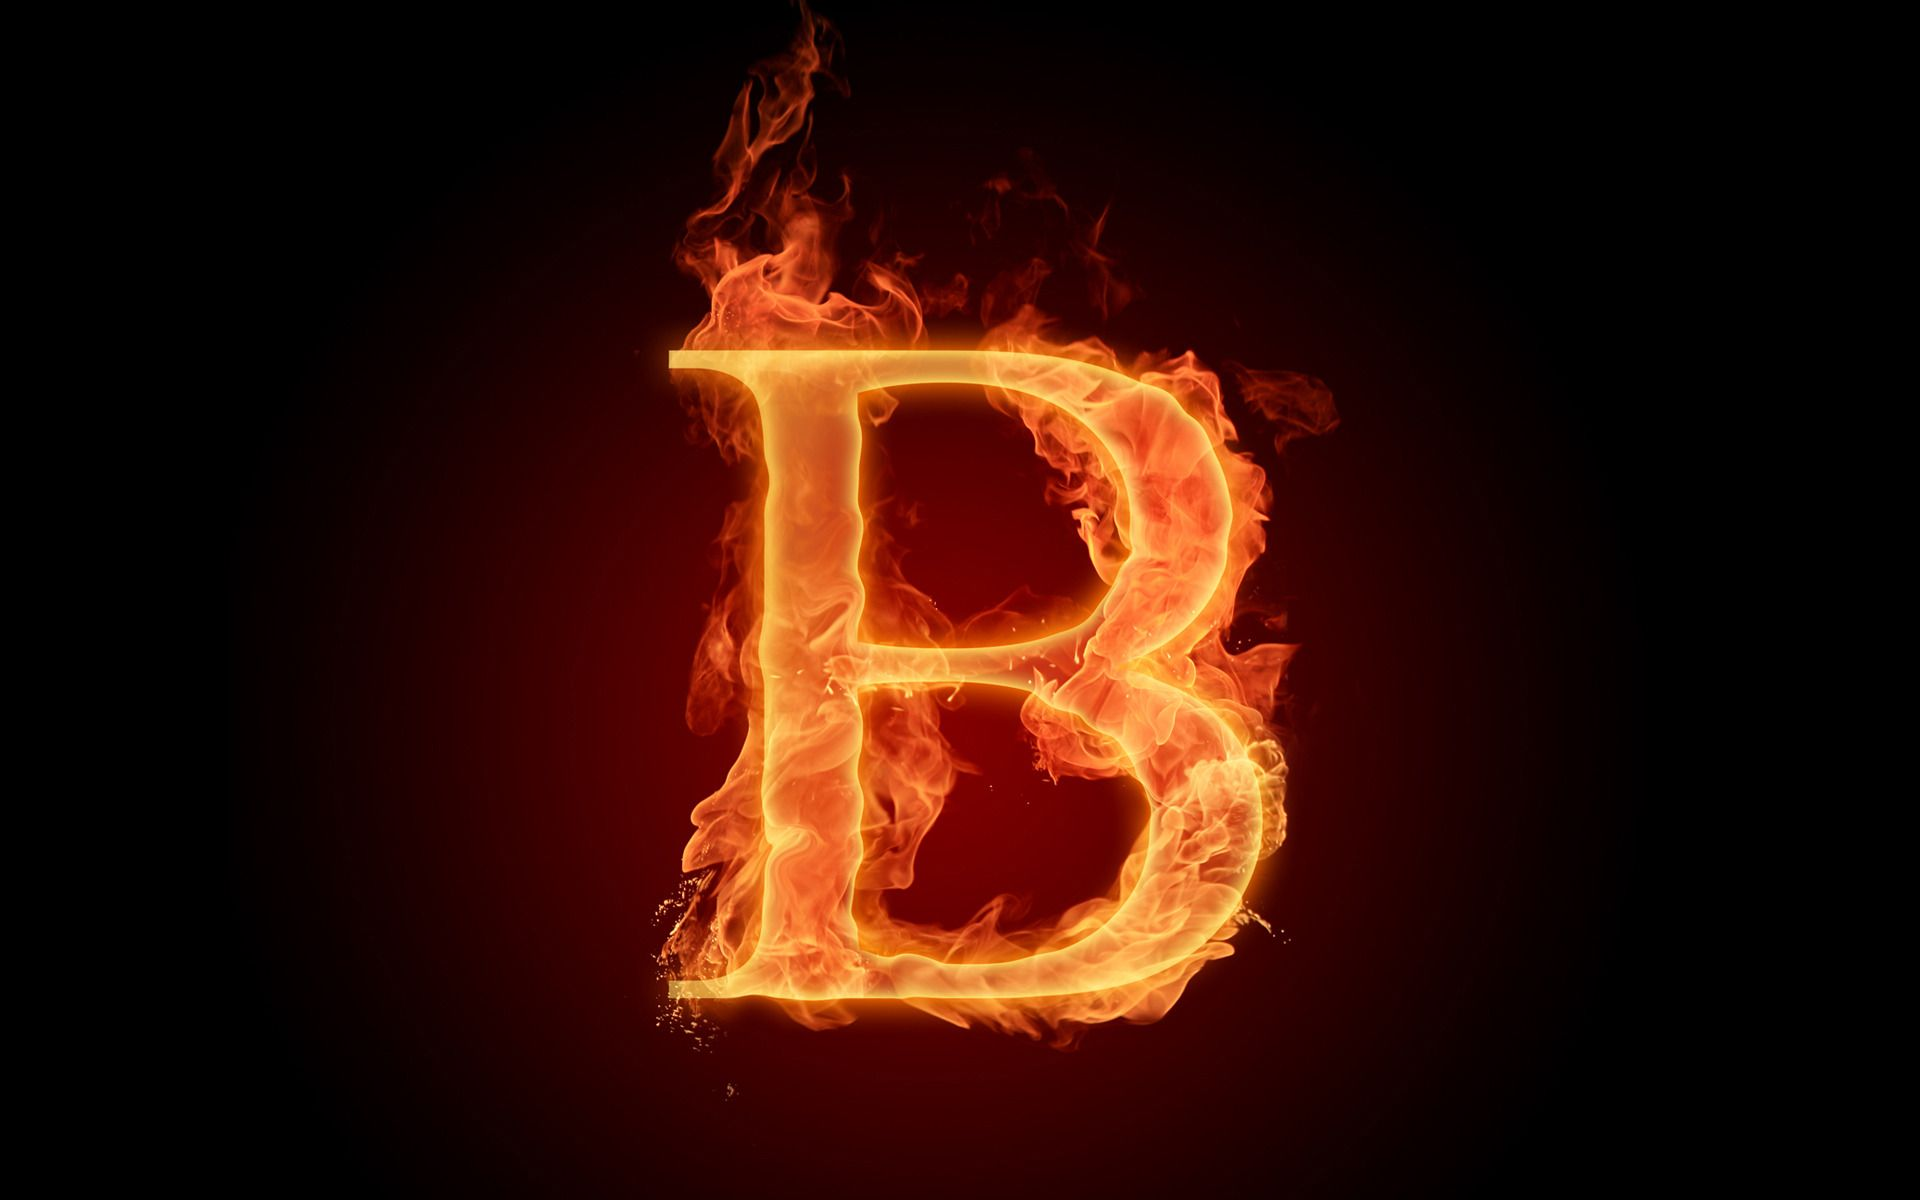 HD Wallpapers The fiery English alphabet picture B ... Aands Alphabet Wallpapers Download